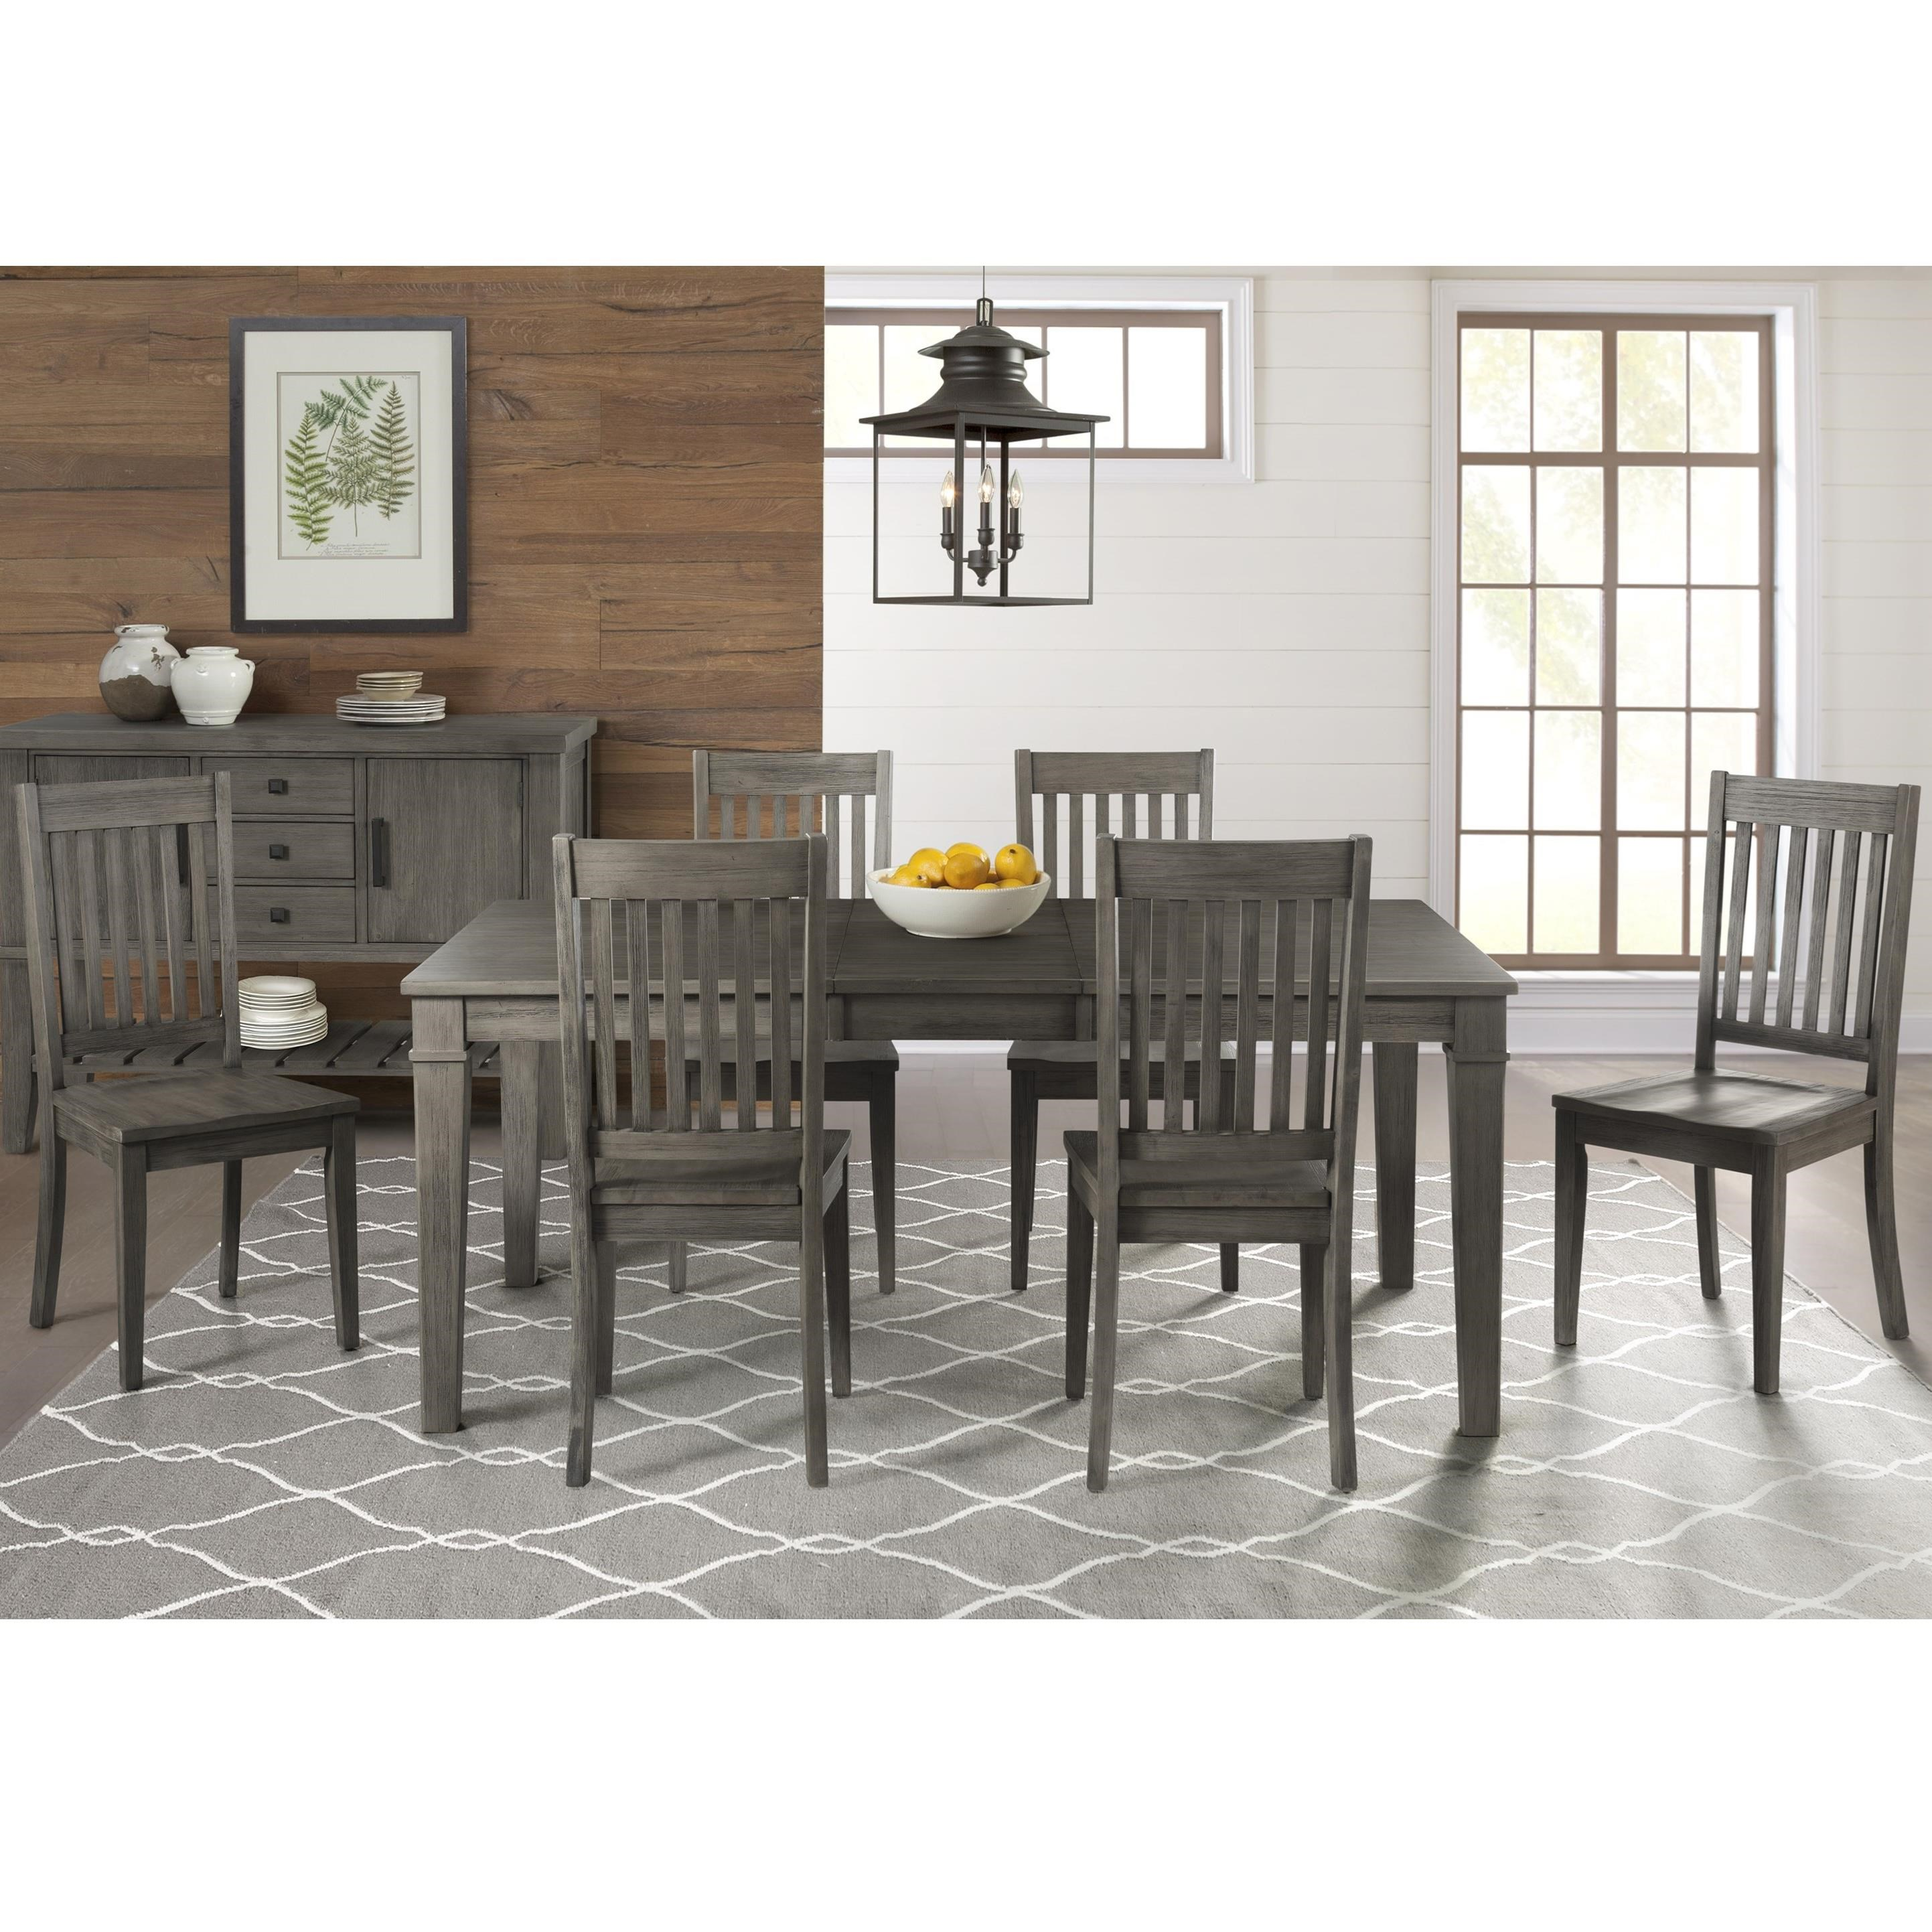 Huron Transitional Table and Chair Set by AAmerica at Van Hill Furniture